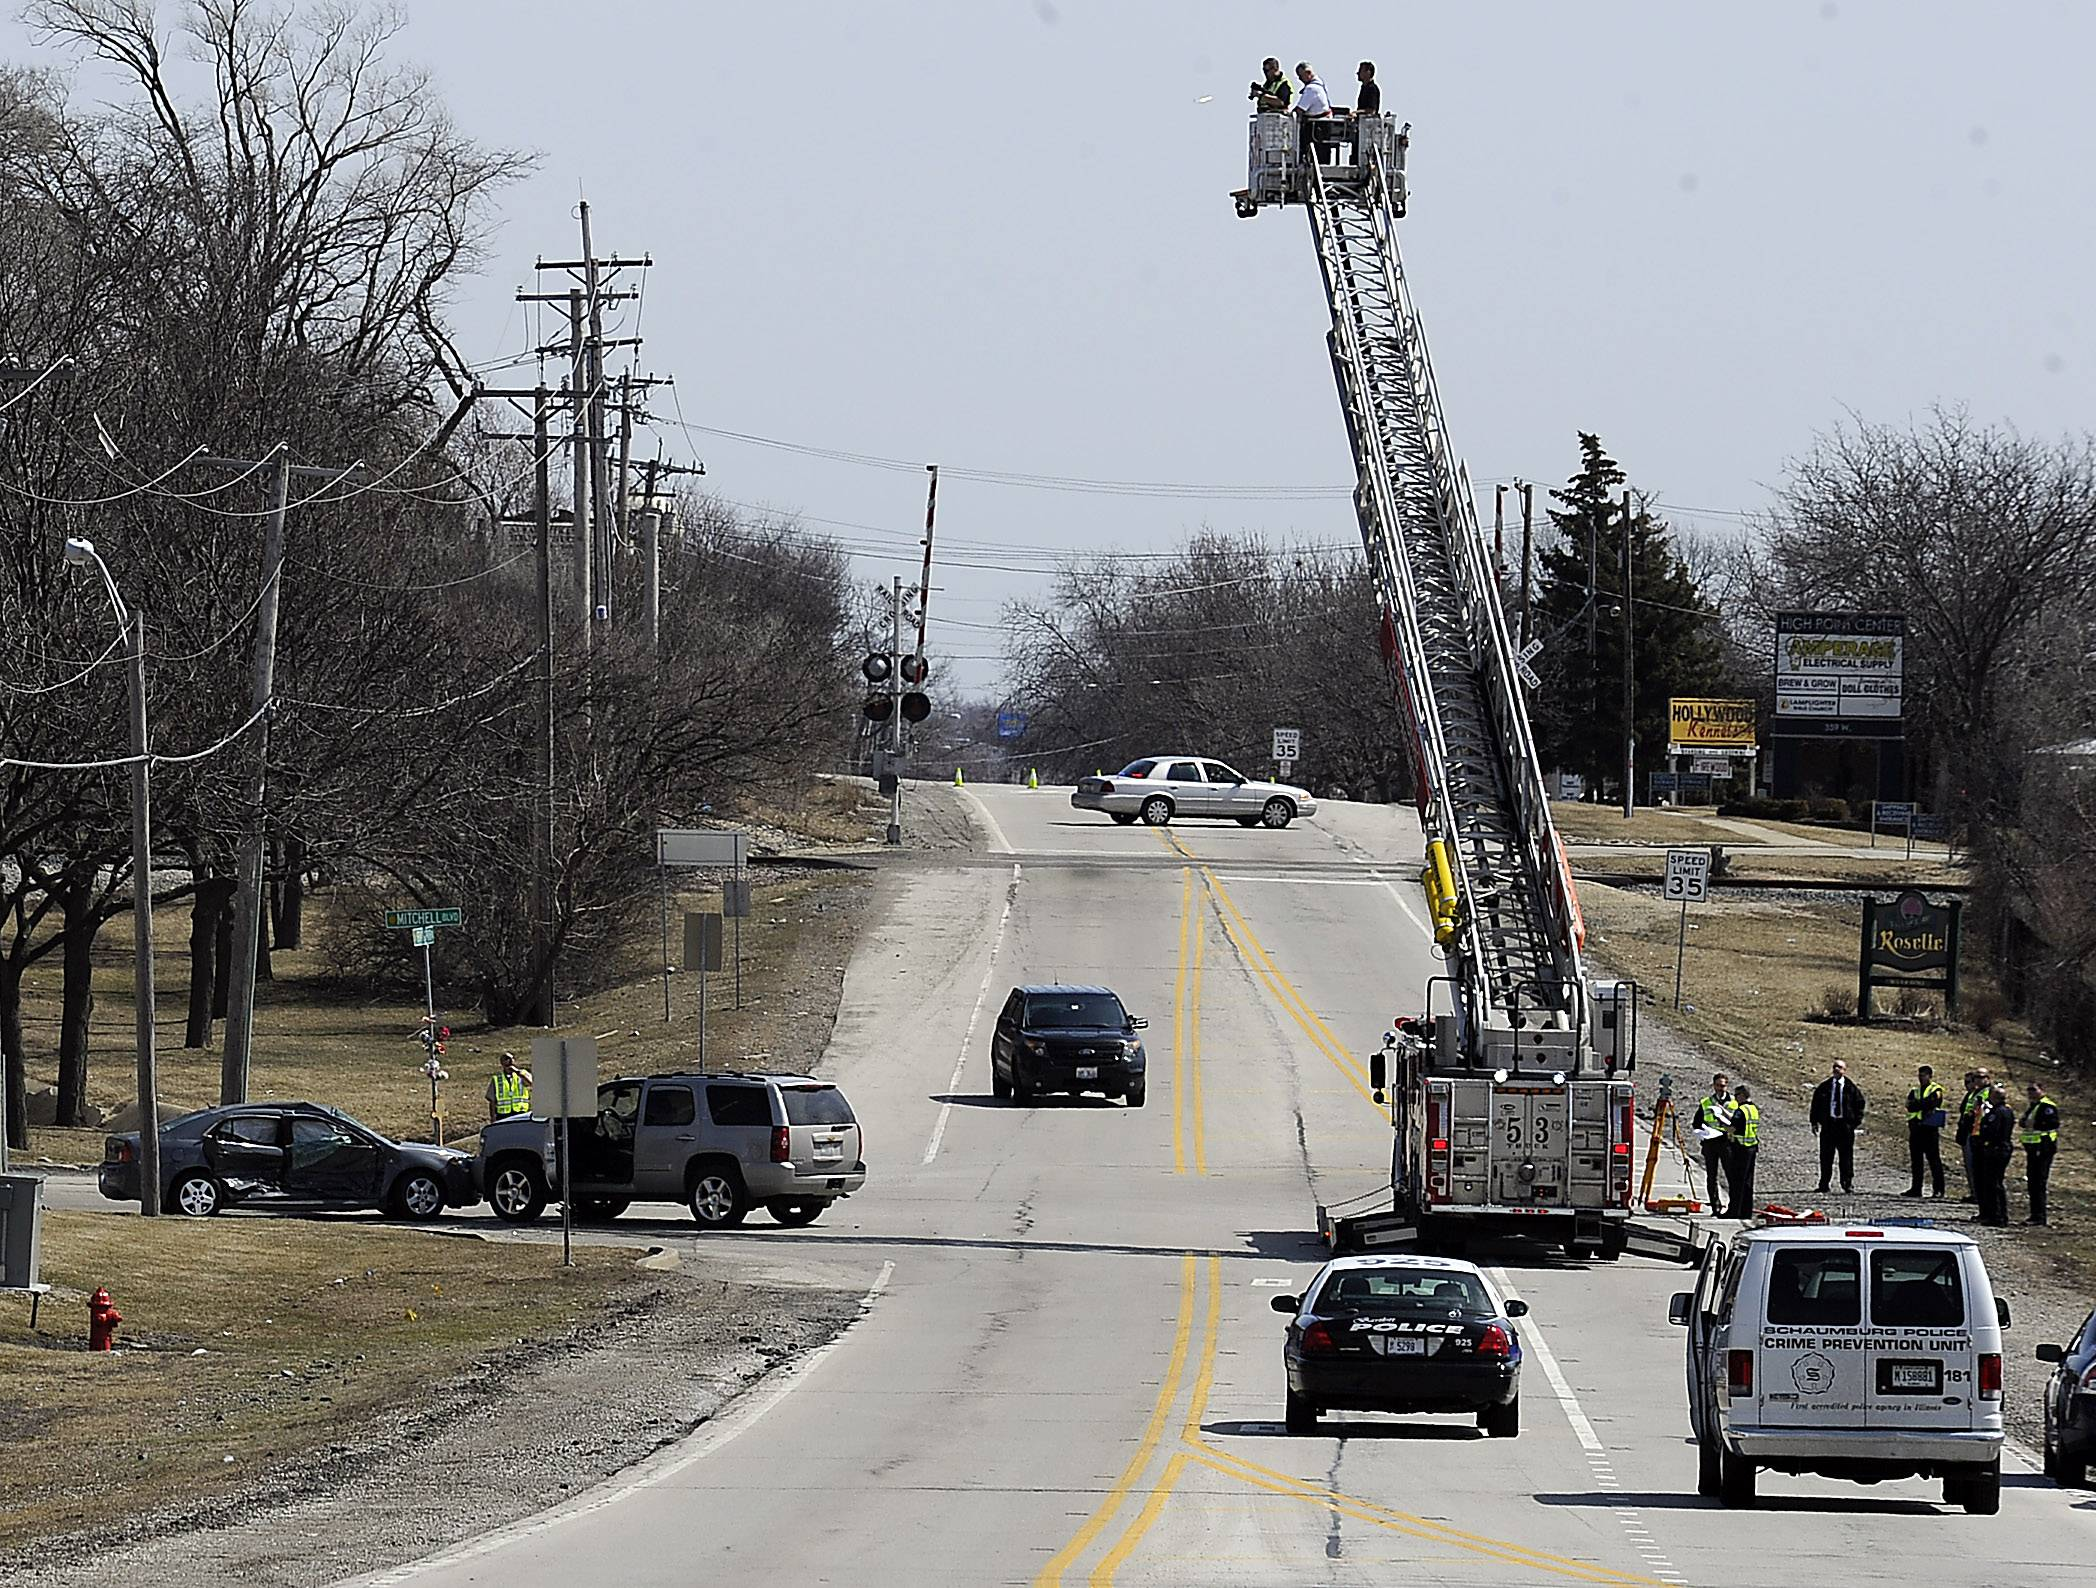 Schaumburg police investigated a two-vehicle crash Monday at Irving Park Road and Mitchell Boulevard that killed a 77-year-old woman and injured two other people. No charges have been filed, police said.